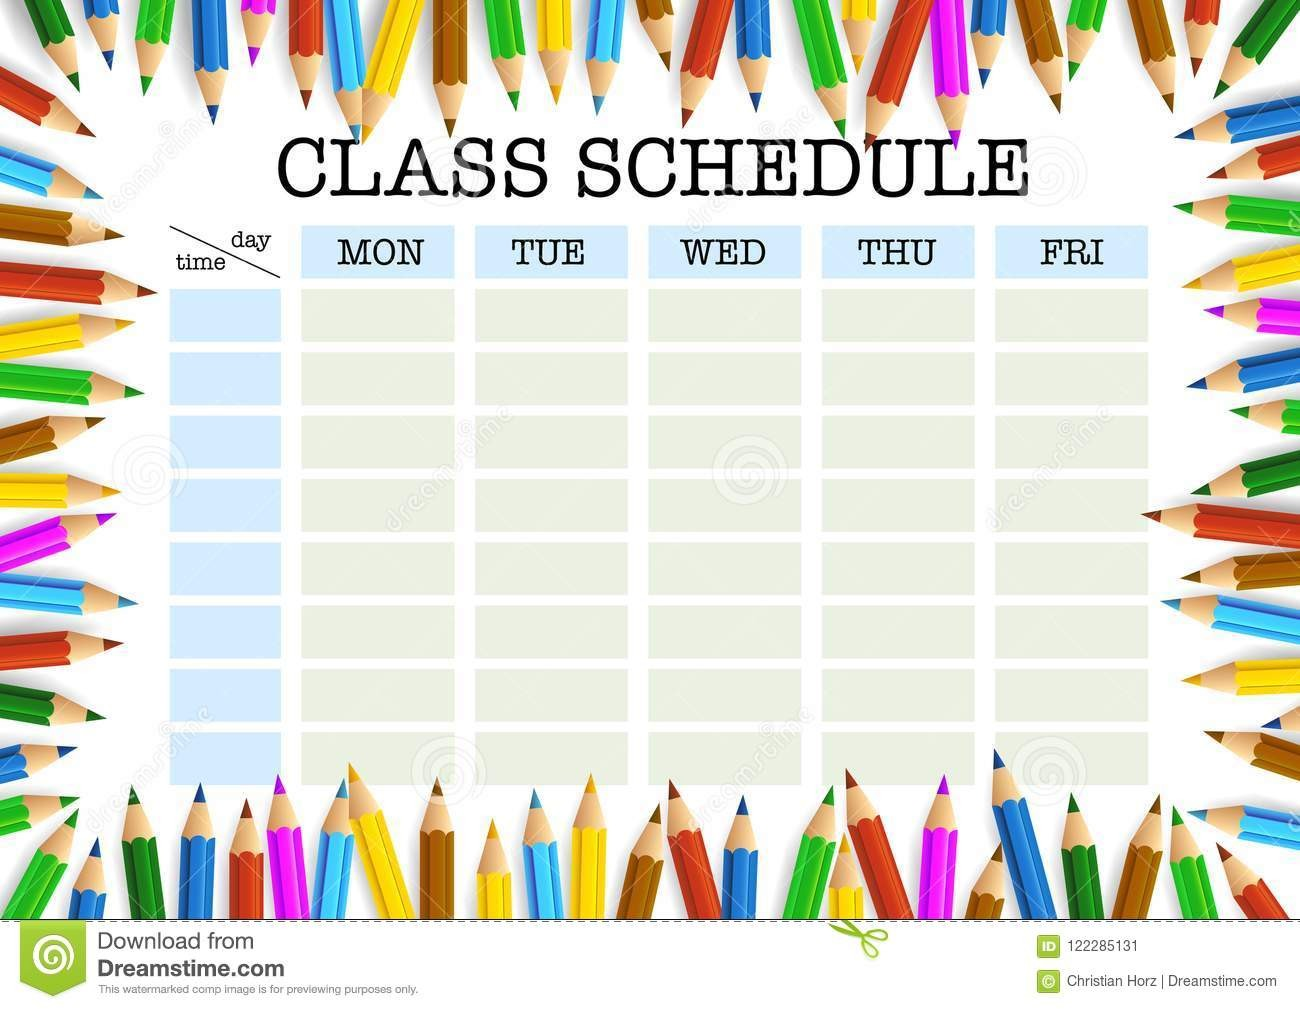 class schedule template tumblr  Class Schedule Surrounded By Colored Pencils Template ..